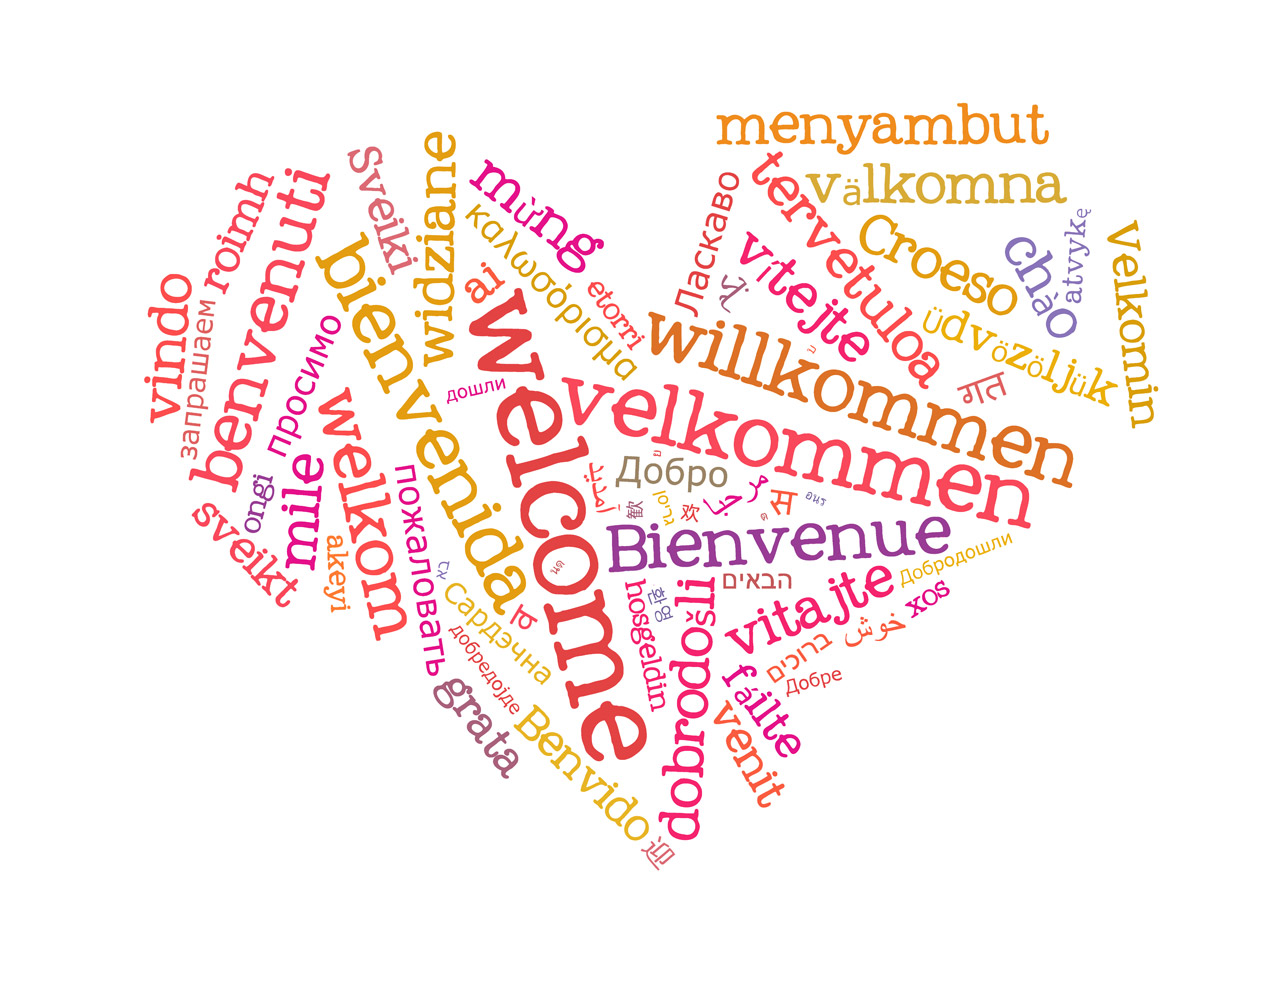 http://www.larteostetrica.it/wp-content/uploads/2013/04/wordcloud-welcome-heart-1.jpg